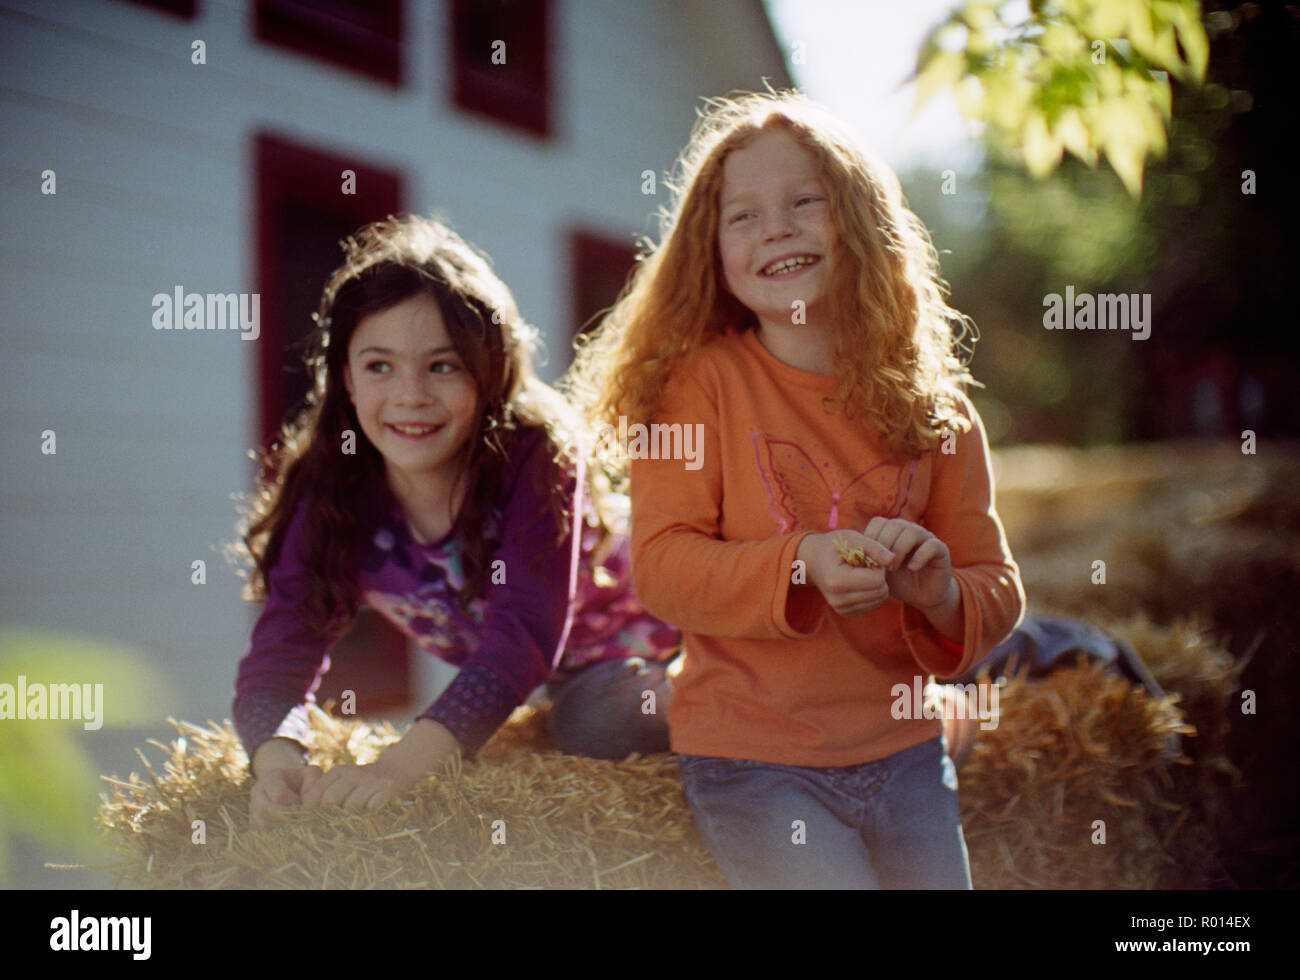 Two happy young girls playing together. - Stock Image